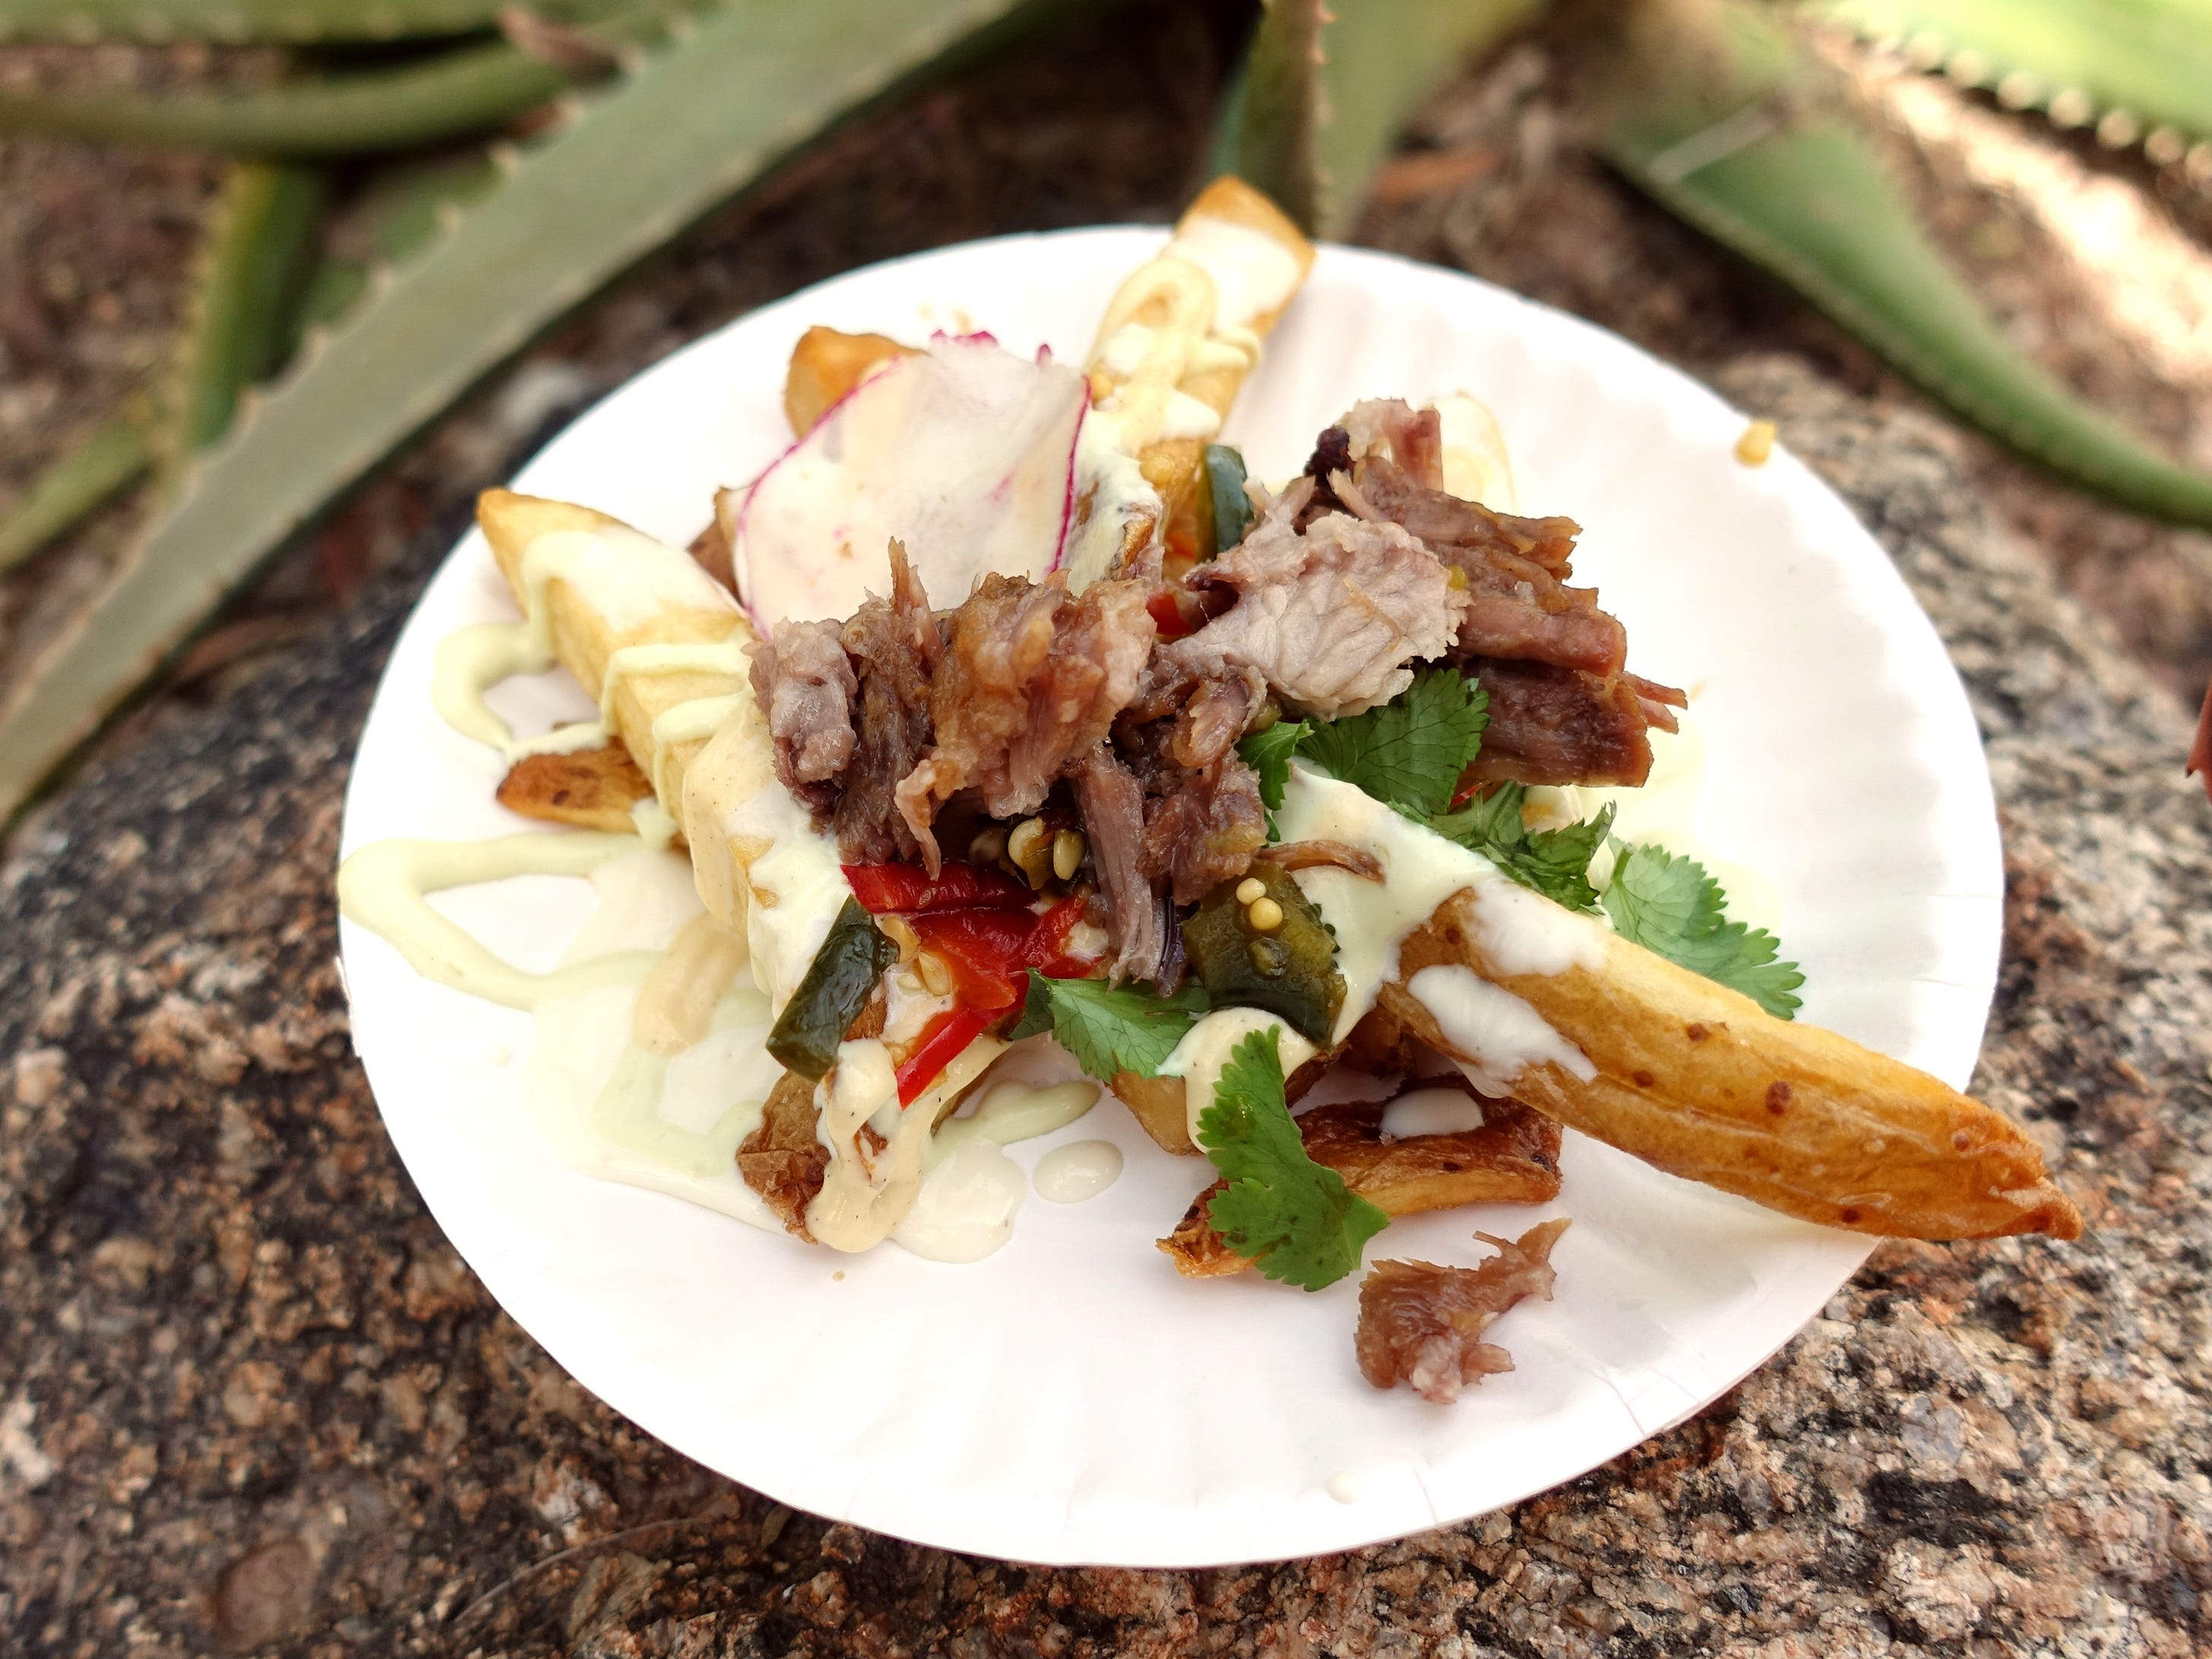 Normal fries with Frites Street fries, fermented chiles, cheese sauce and carnitas from Frites Street at the 2019 Devour Culinary Classic at the Desert Botanical Garden in Phoenix.